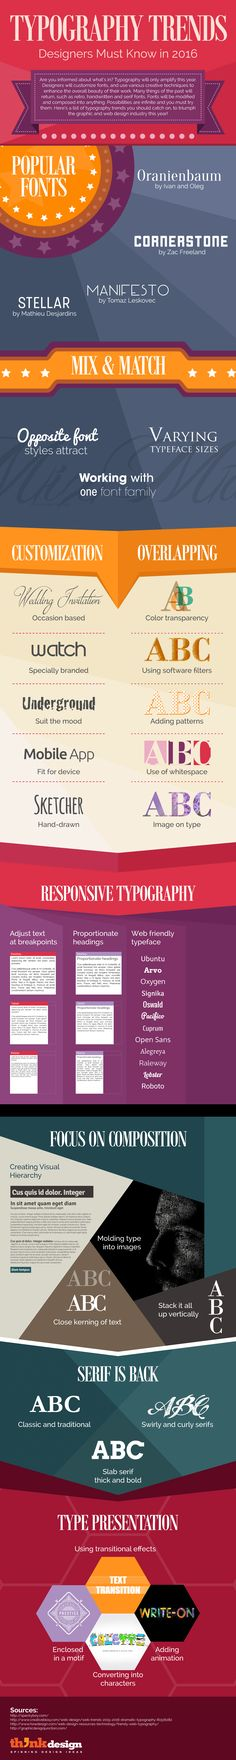 Typography Trends Marketers Need to Know About [Infographic], via @HubSpot